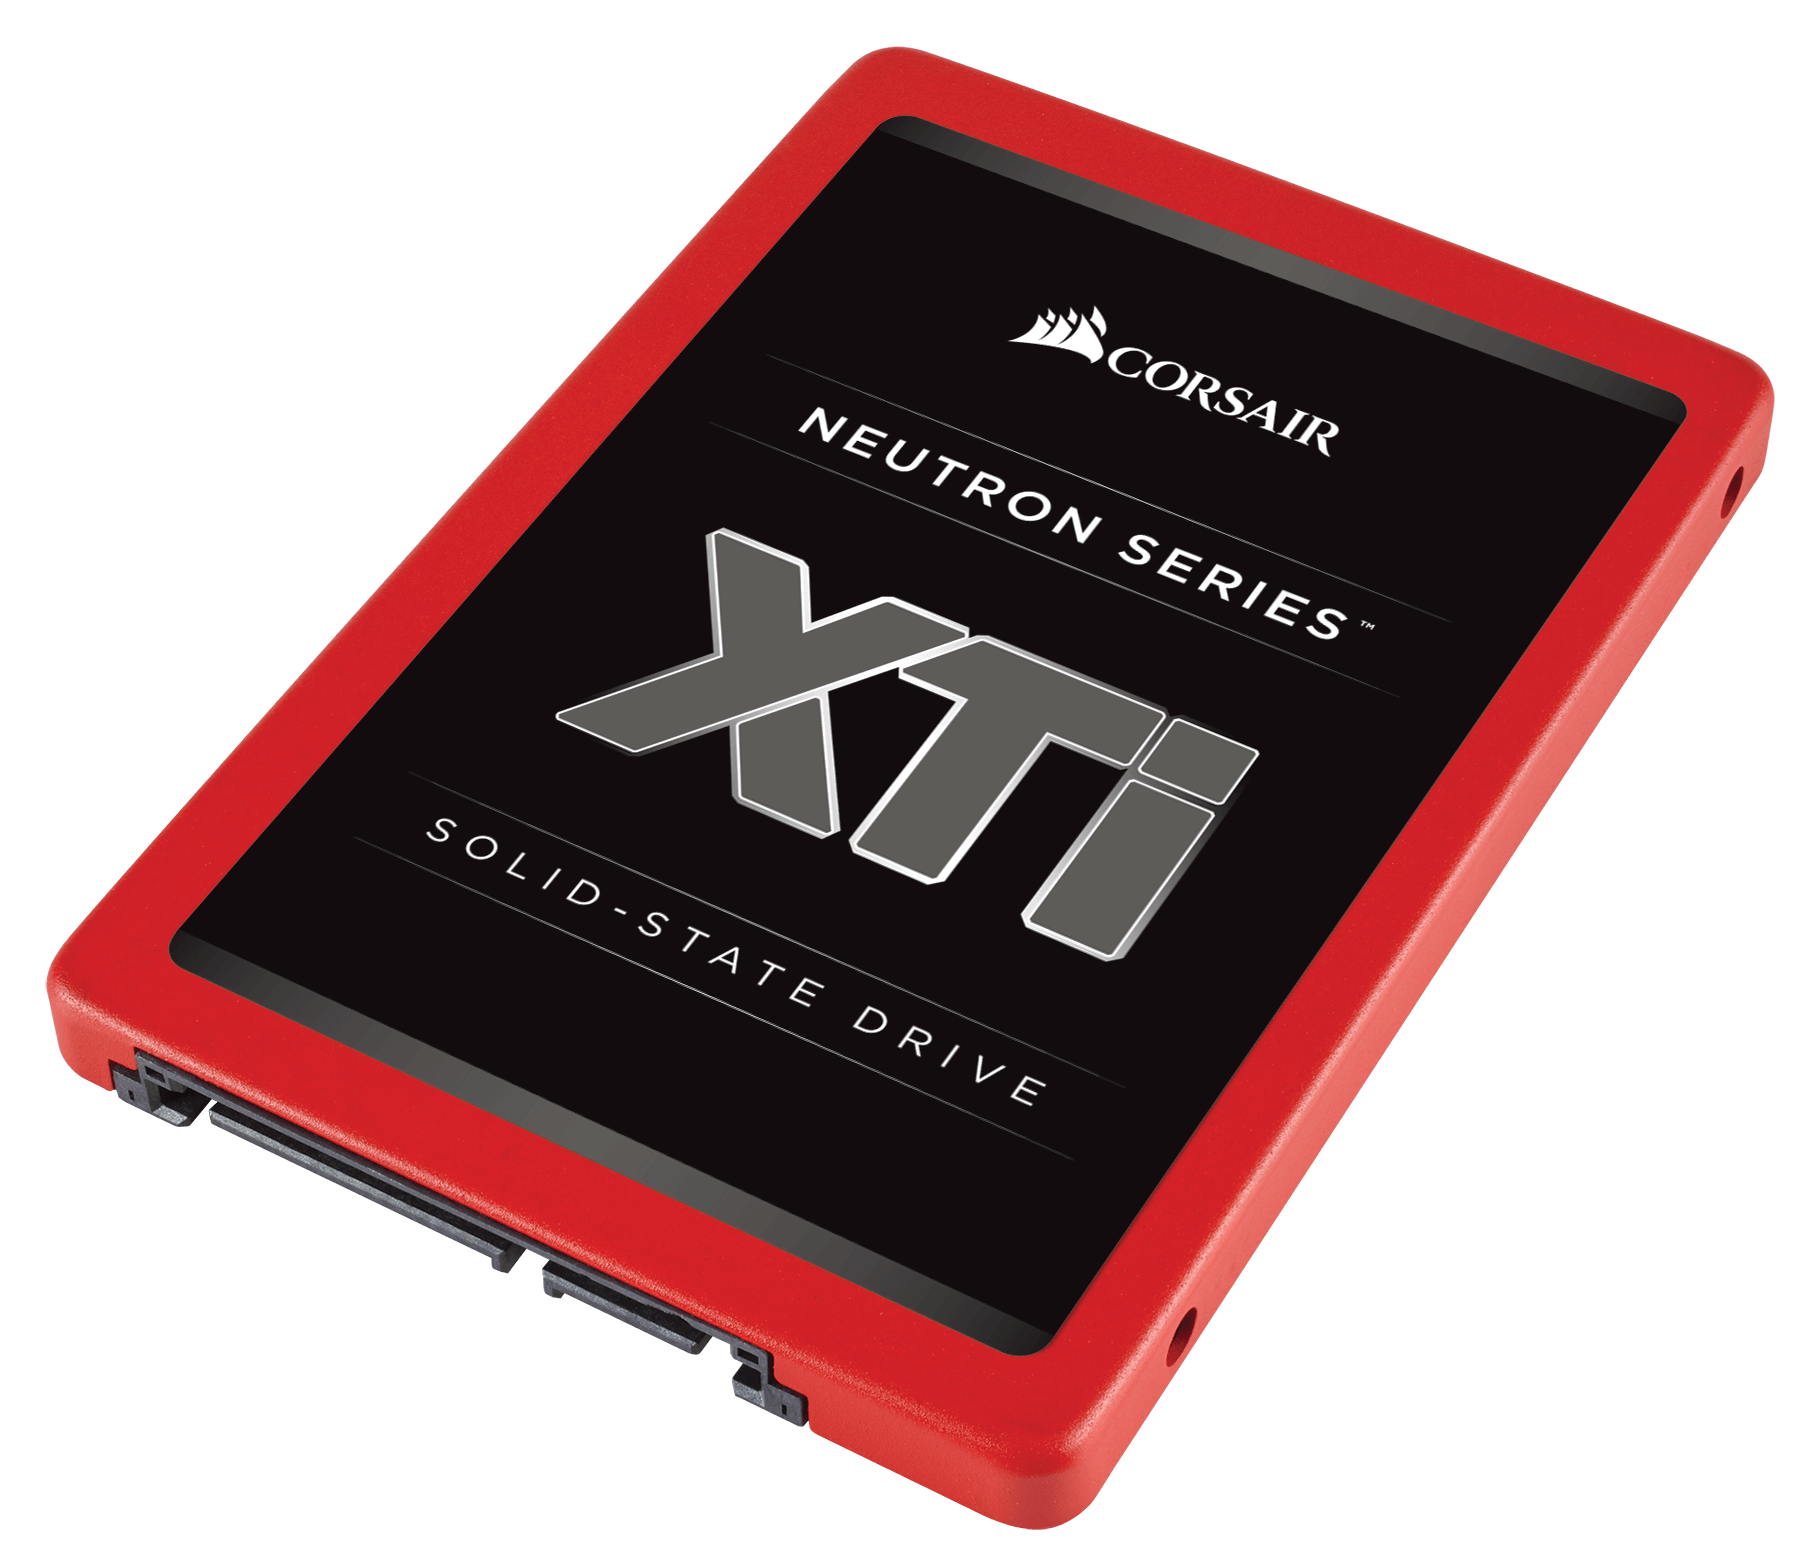 Corsair Neutron Series XTi 480GB SATA 3 6Gb / S SSD